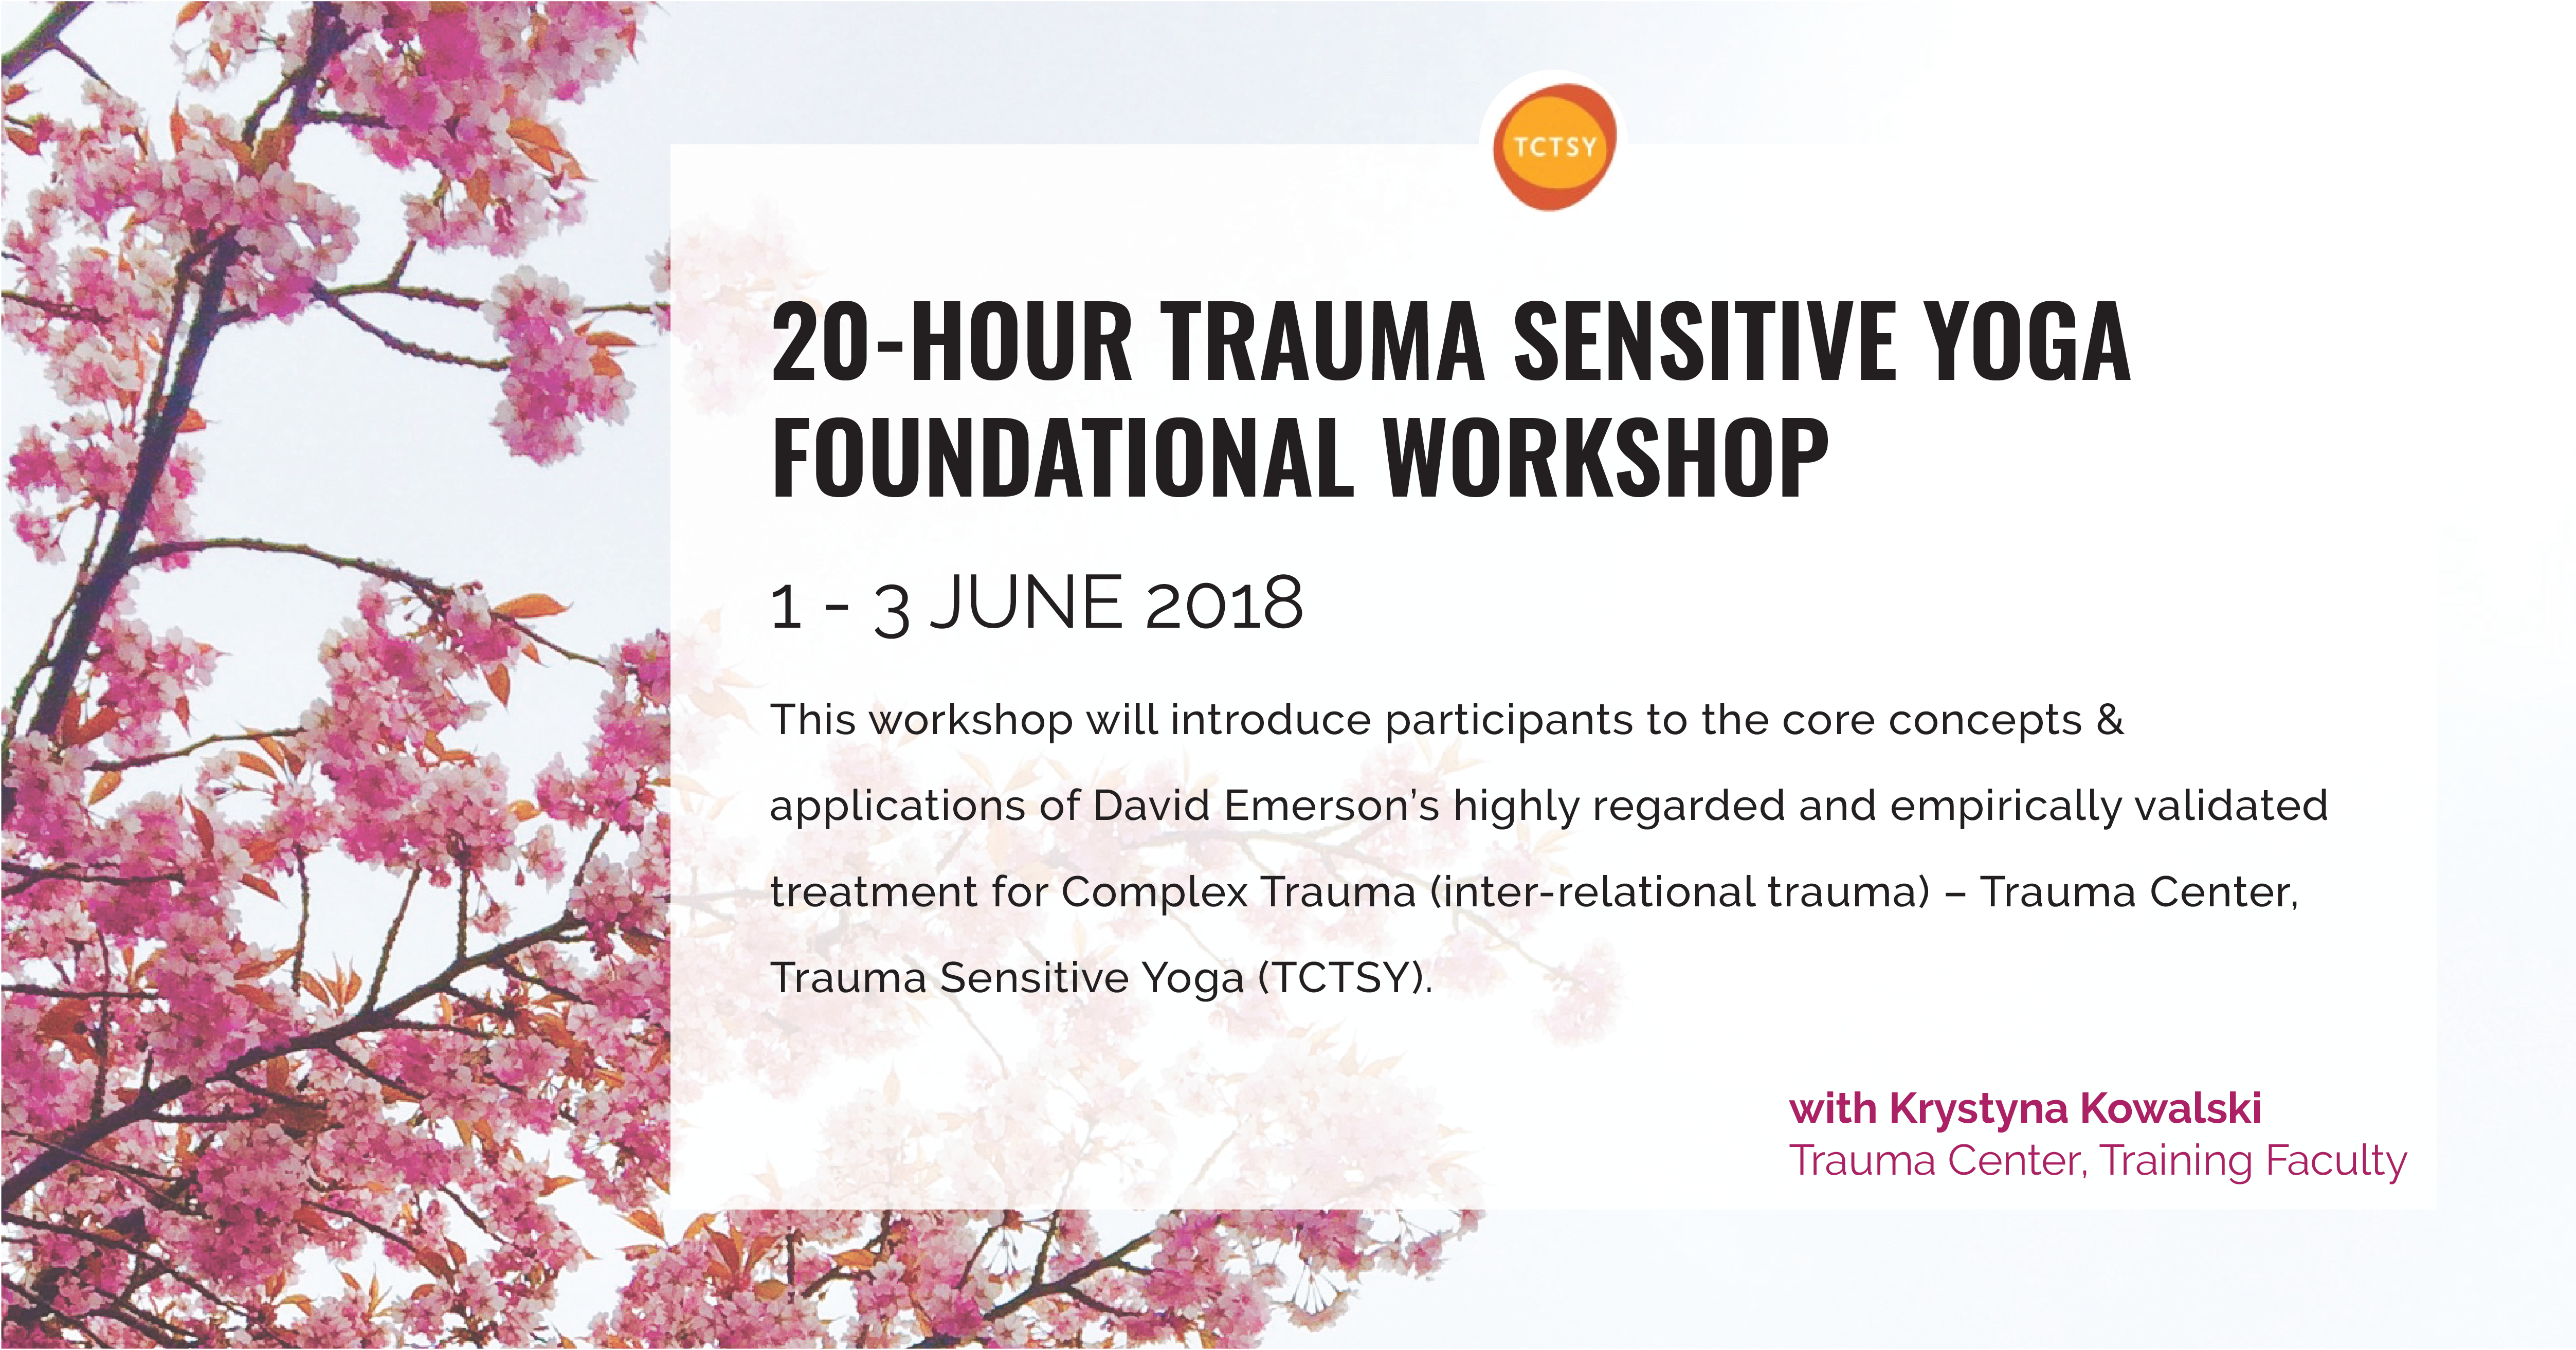 20 Hour Trauma Sensitive Yoga Foundational